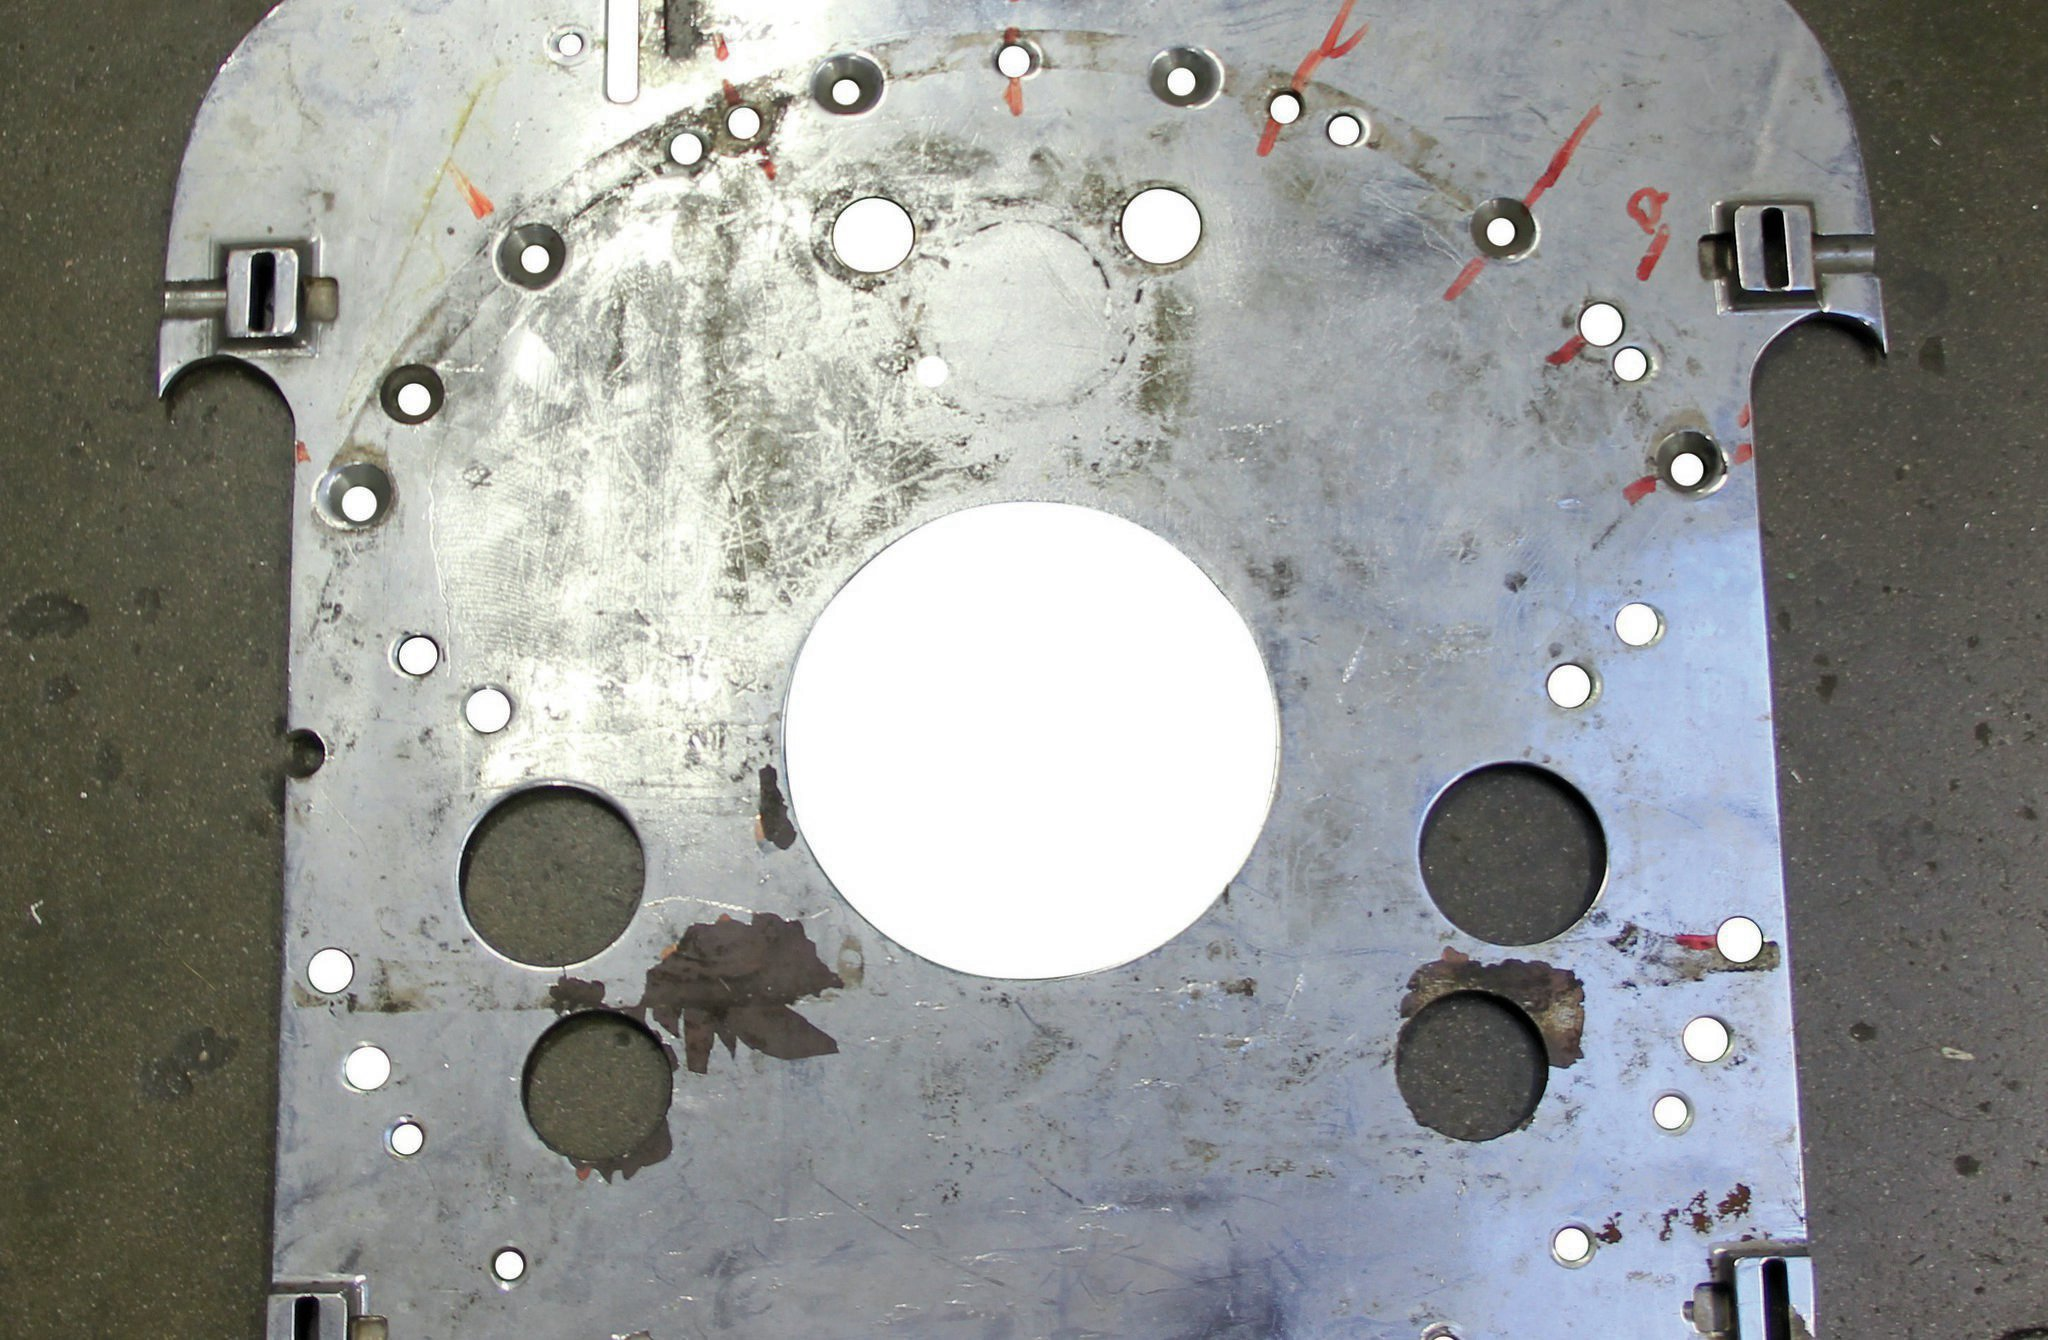 The original motor plate is all that's left of Steve Carbone's, Don Long–built front-engine dragster. The plate was originally machined to mount a 392ci Hemi, but was then reworked by another shop to handle the 426ci Hemi used during the infamous burndown of Don Garlits at the starting line in 1971.